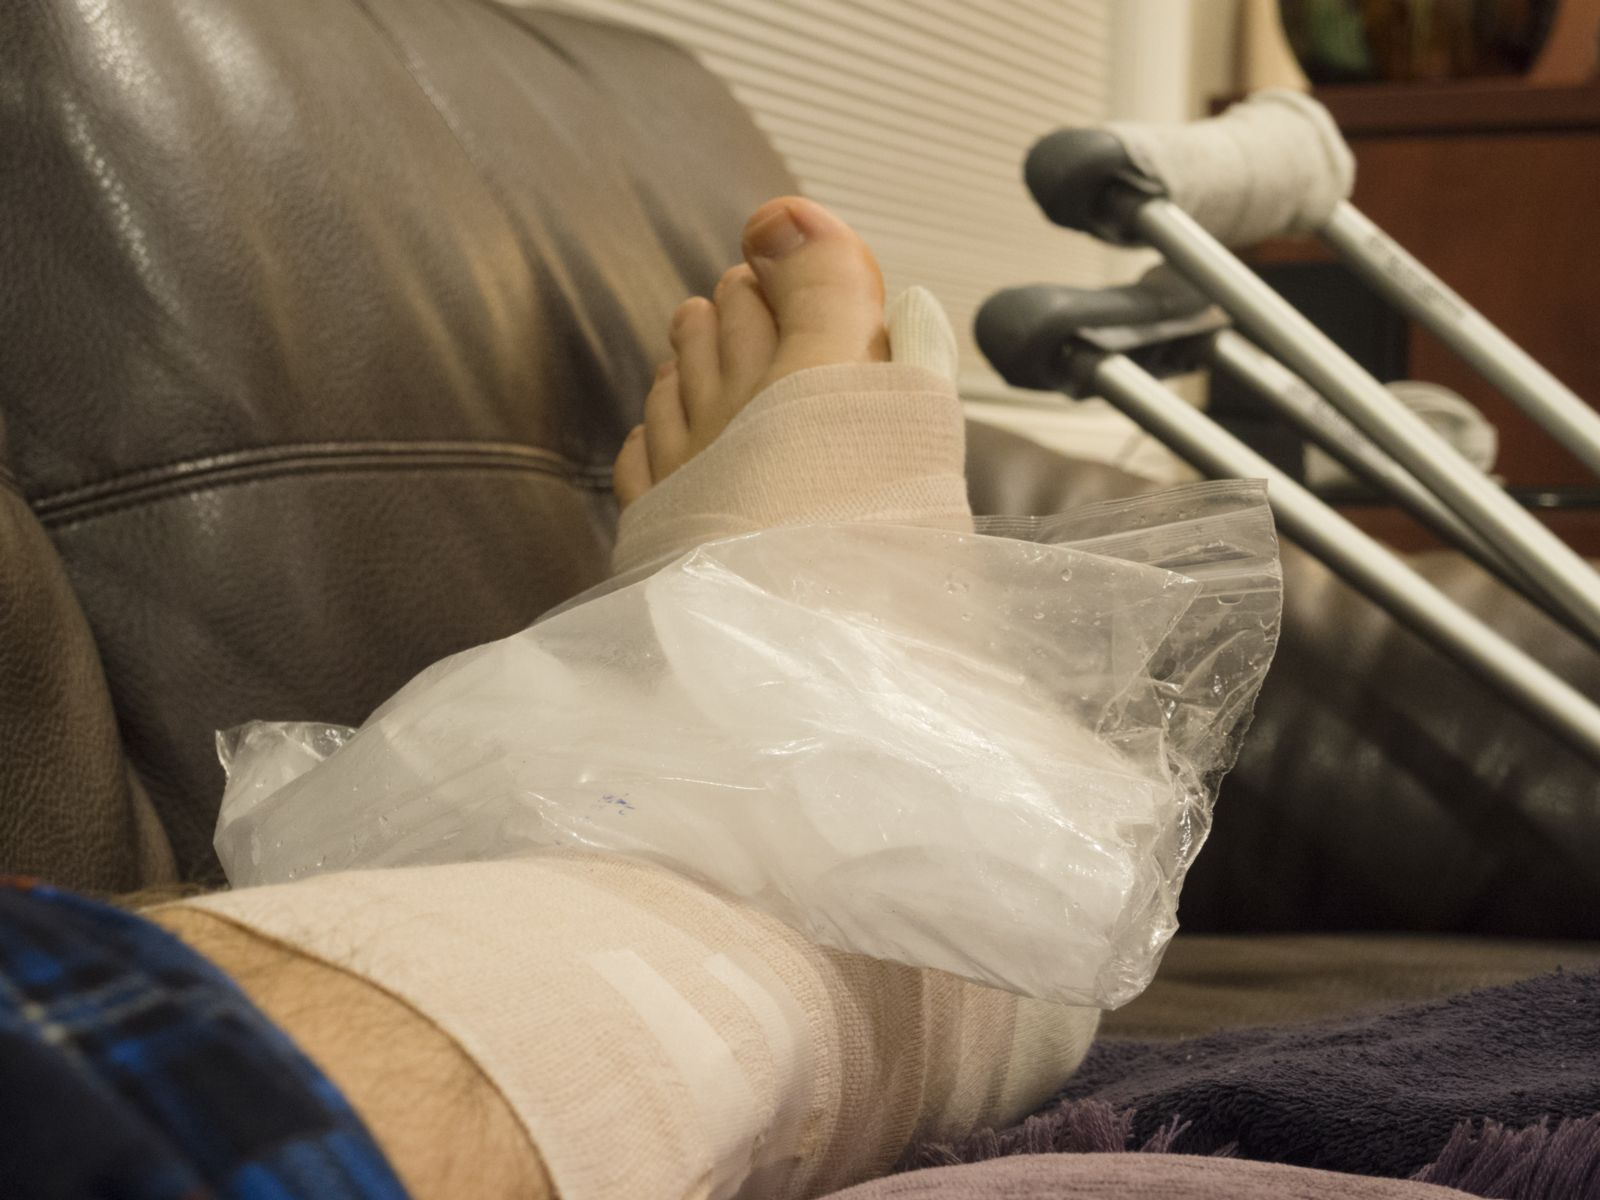 Even after your cast comes off, you likely won't be ready for immediate driving